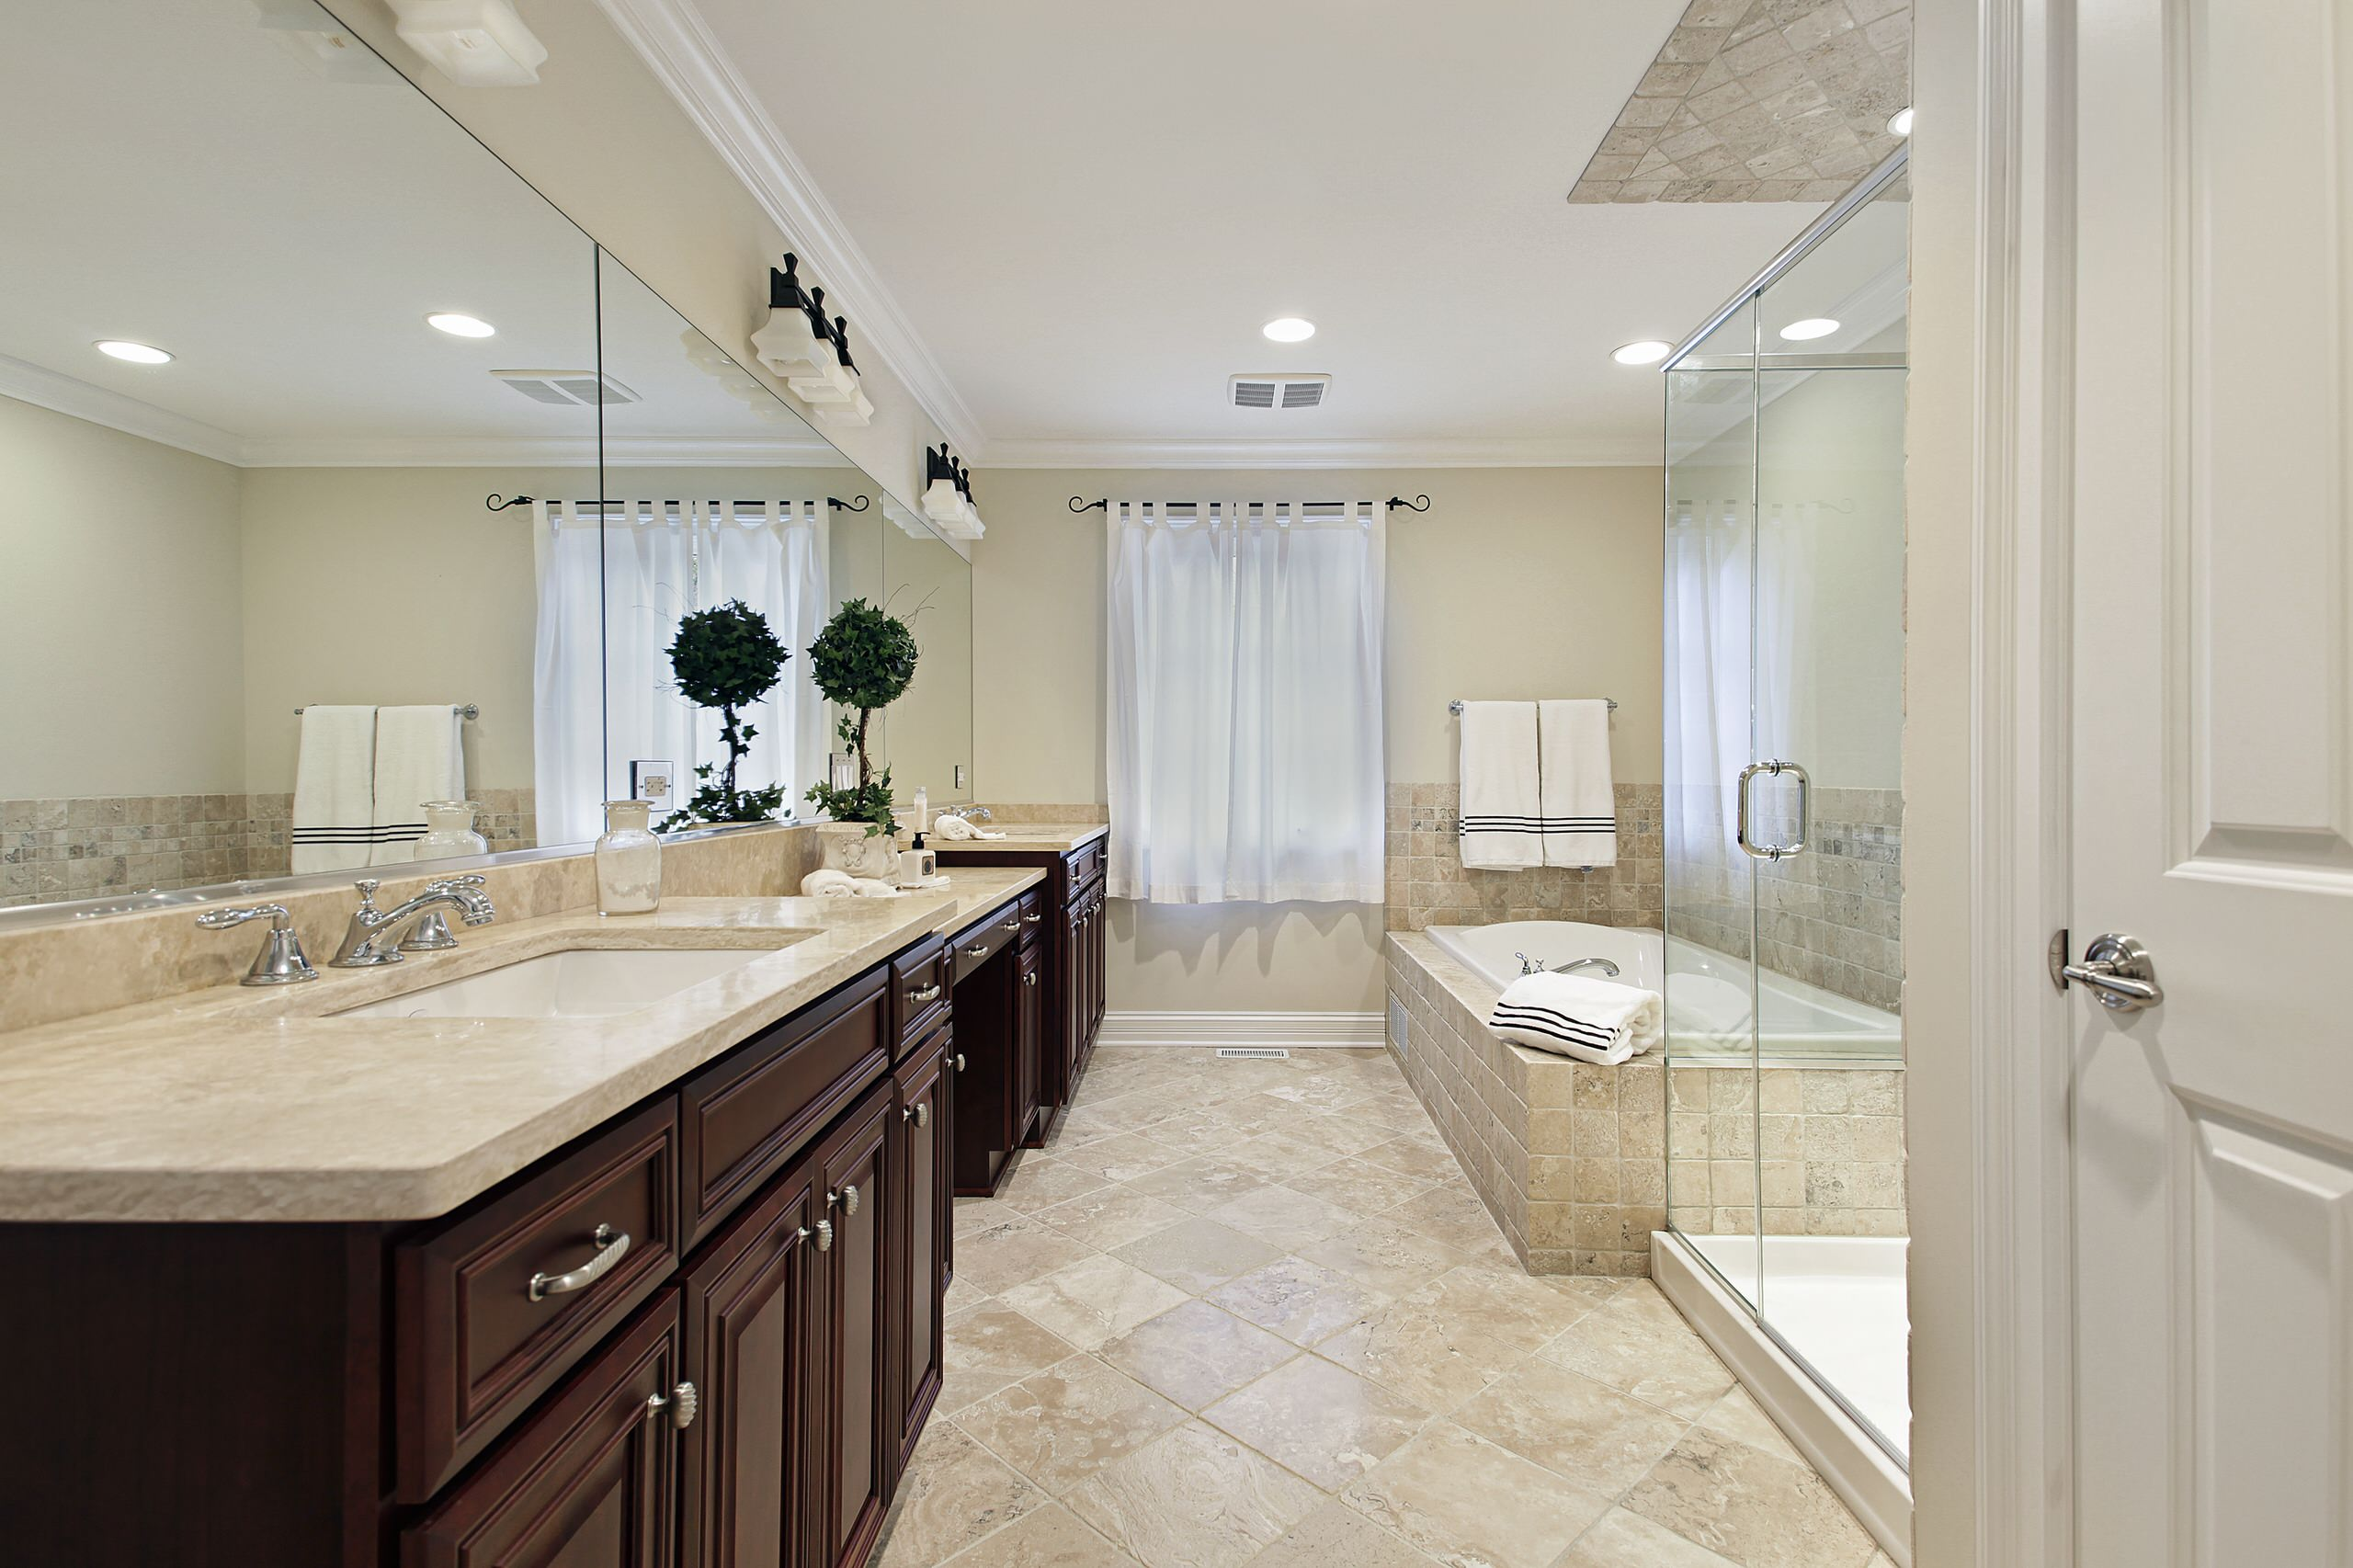 Large Master Bathroom with decked tub